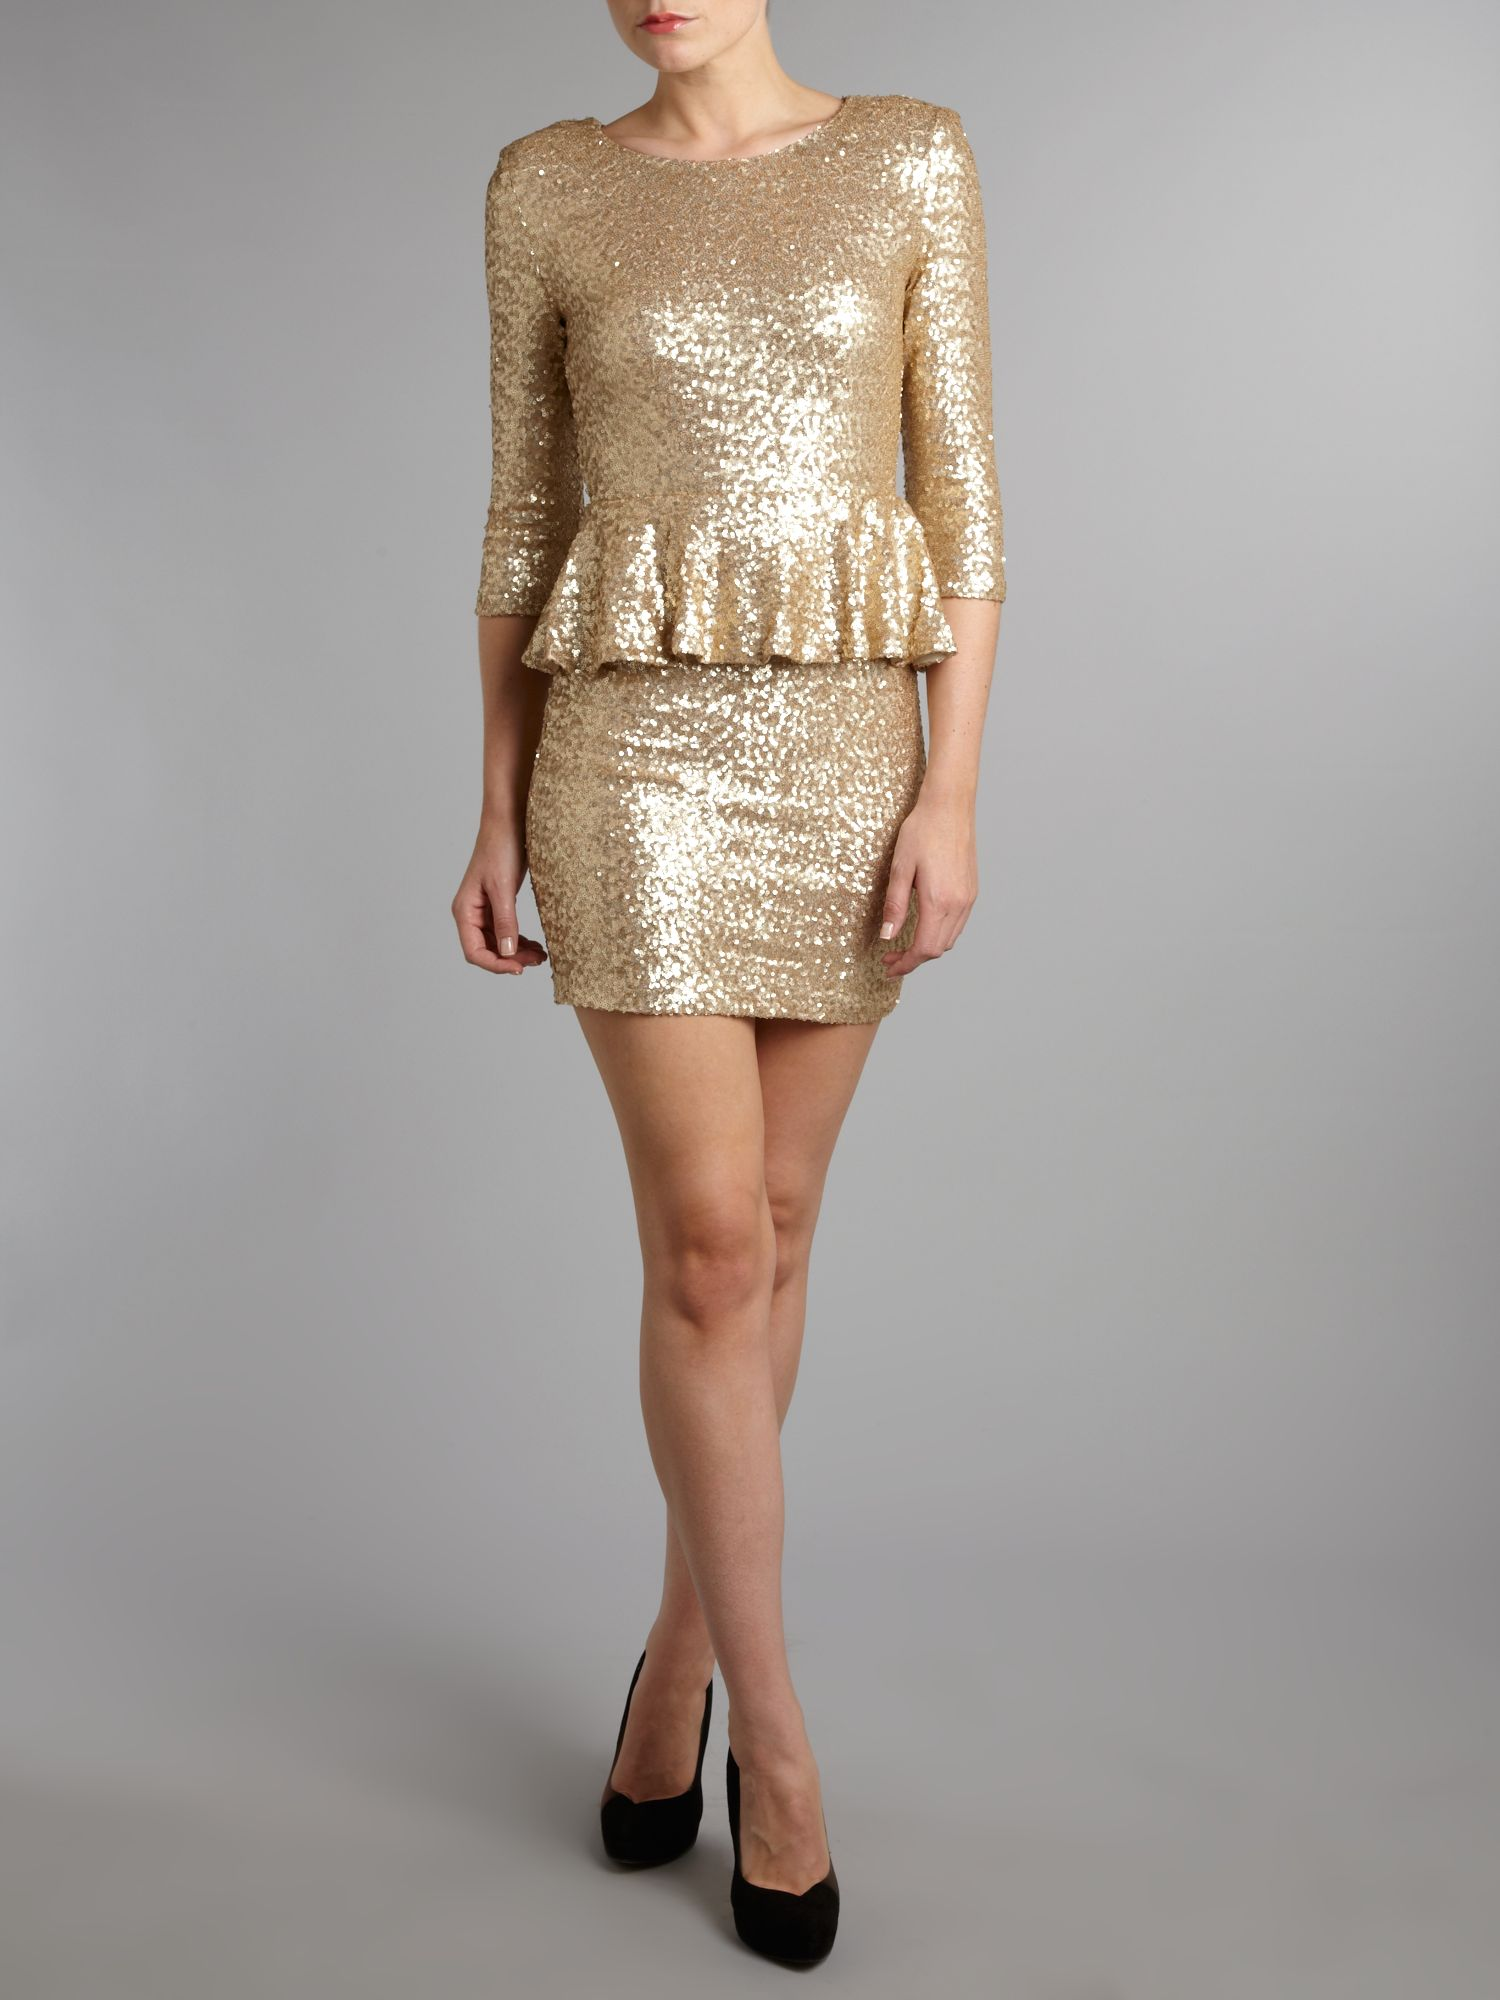 Tfnc gold sequin dress with long sleeves